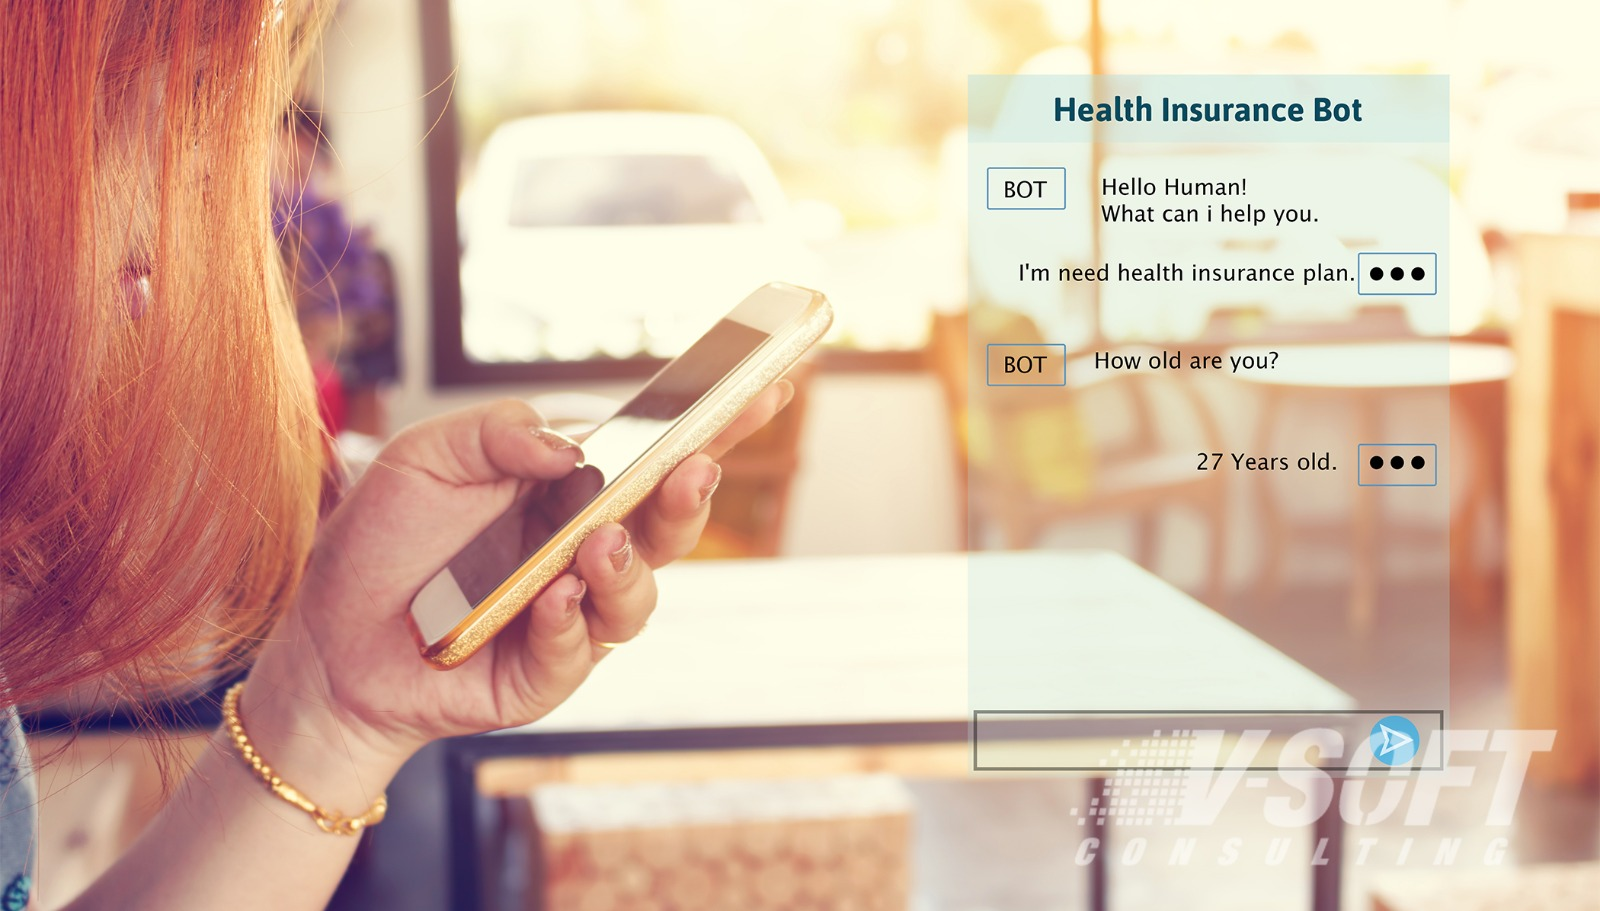 AI-powered chatbots can be beneficial in the insurance industry by providing 24/7 service and quick response times for customers with policy and process questions.